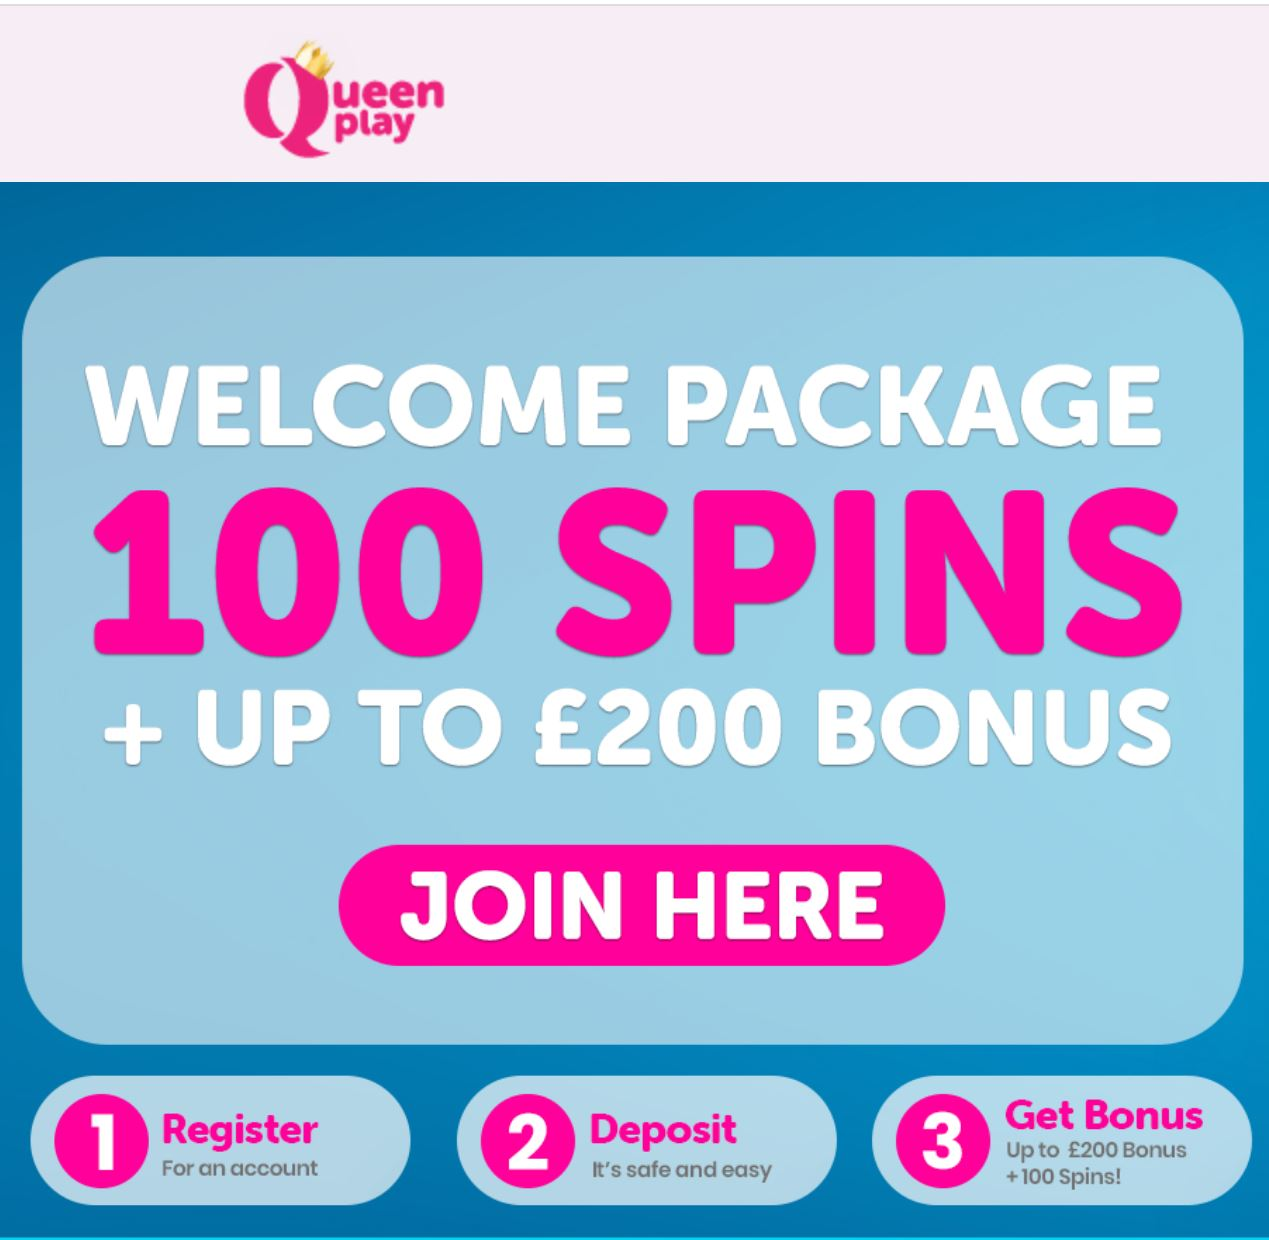 Queenplay new customer offer